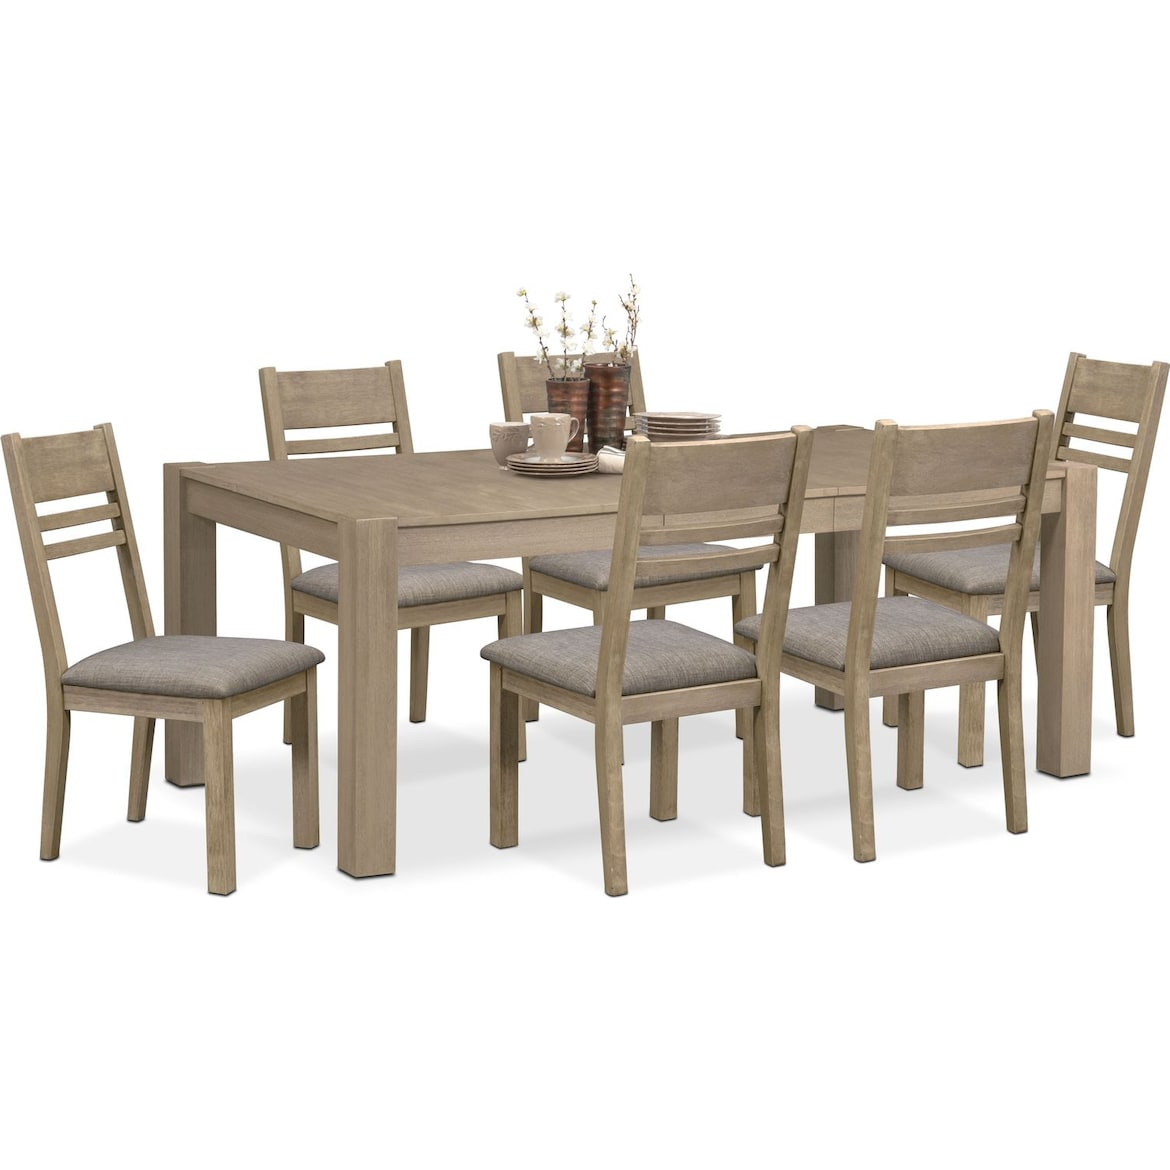 c6061427cadc70 Tribeca Table and 6 Side Chairs | Value City Furniture and Mattresses